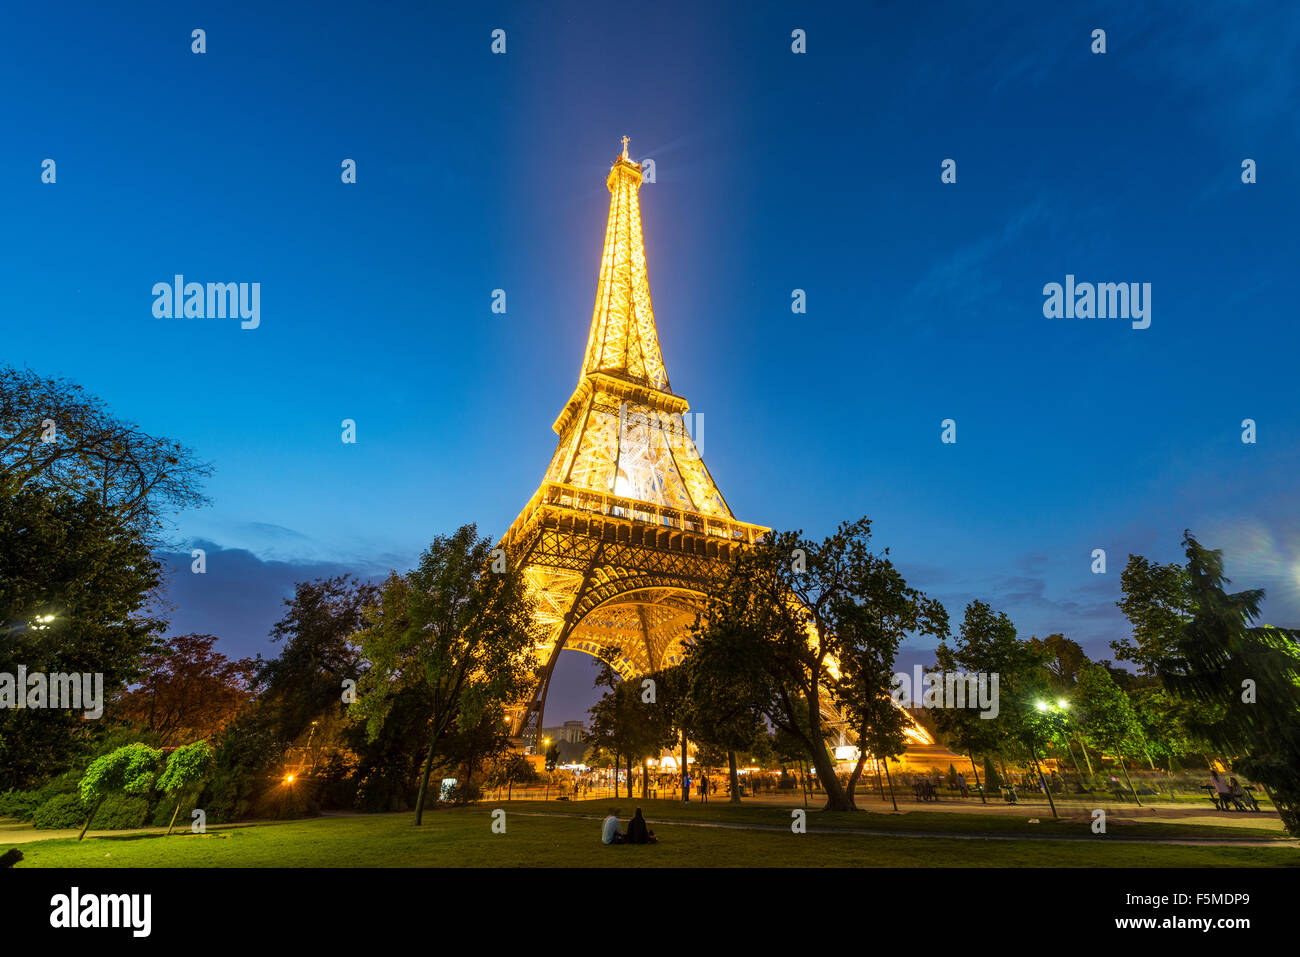 Illuminated Eiffel Tower at dusk, tour Eiffel, Champ de Mars, Paris, Ile-de-France, France Stock Photo